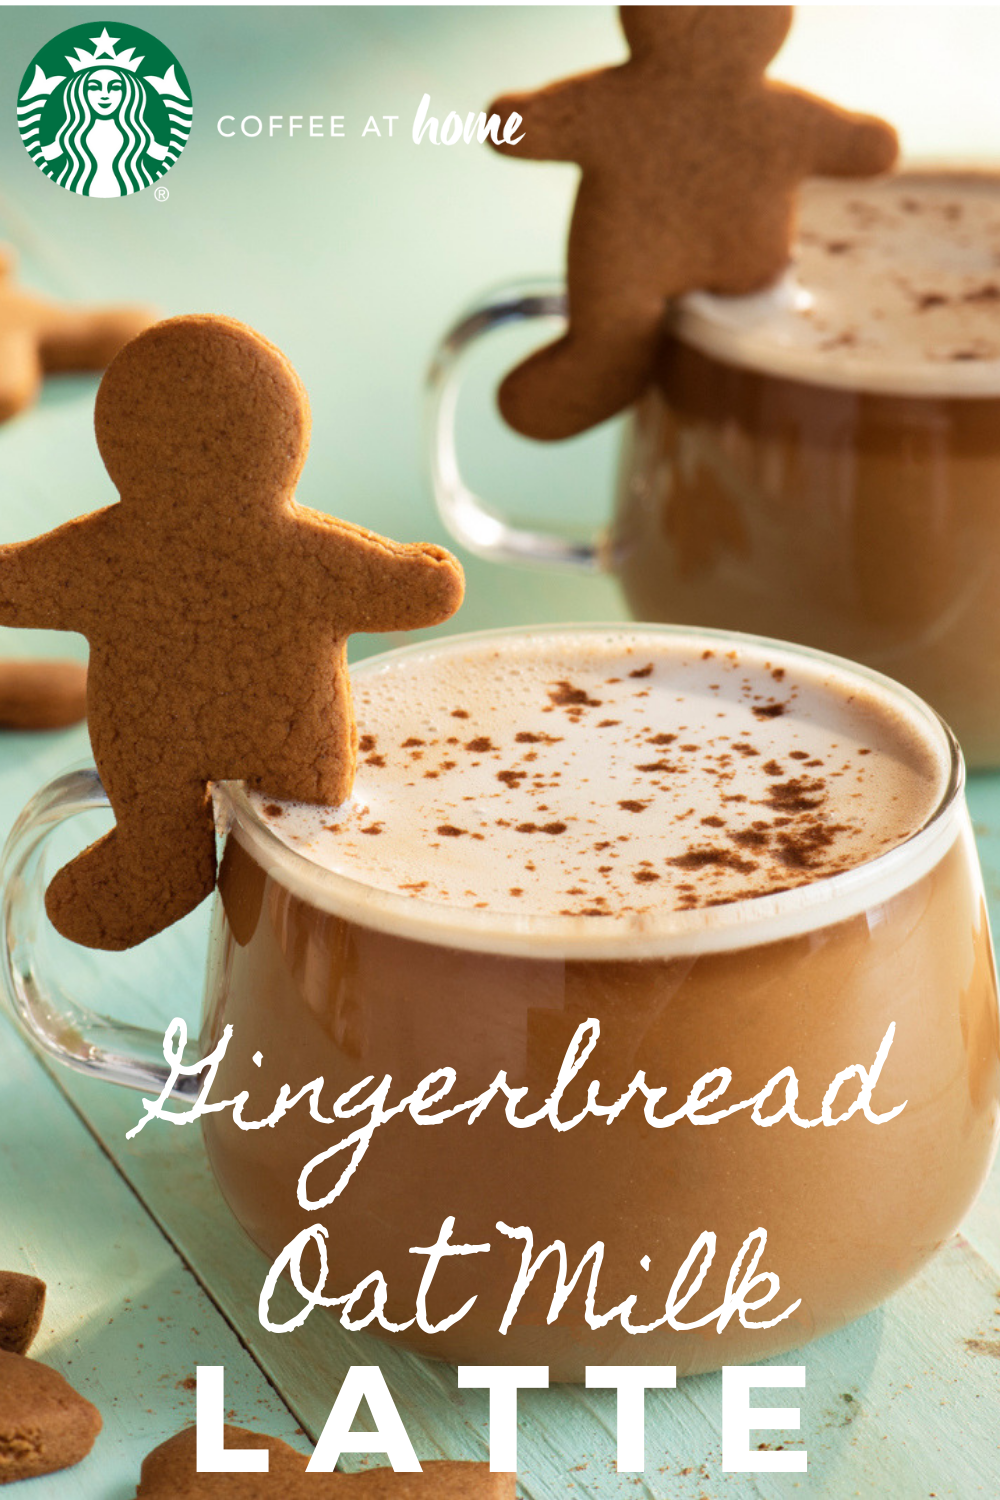 Made with frothed oat milk, spiced with gingerbread